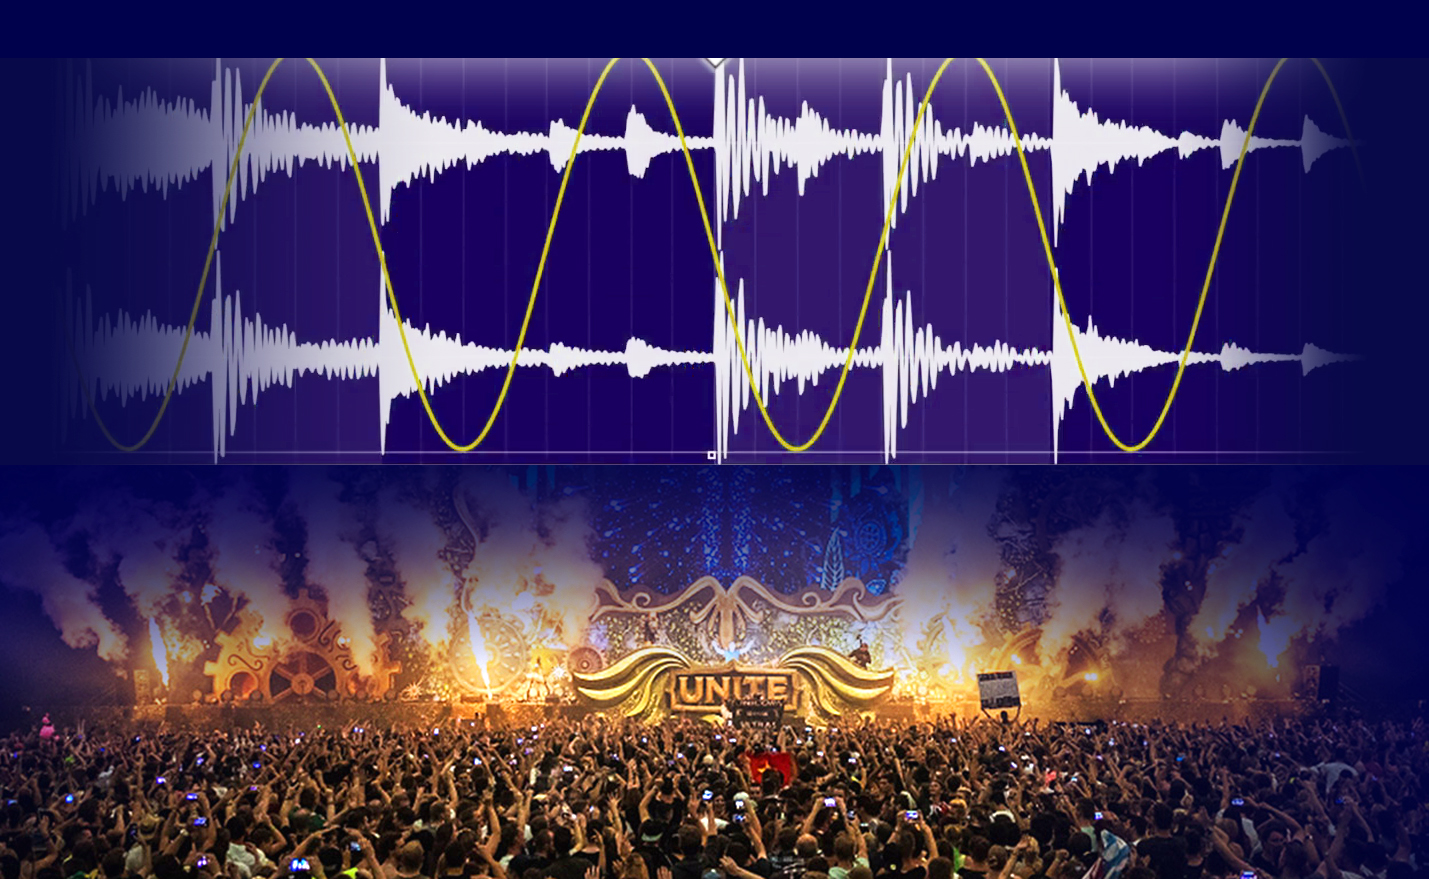 c-unite-tomorrowland-2018.jpg